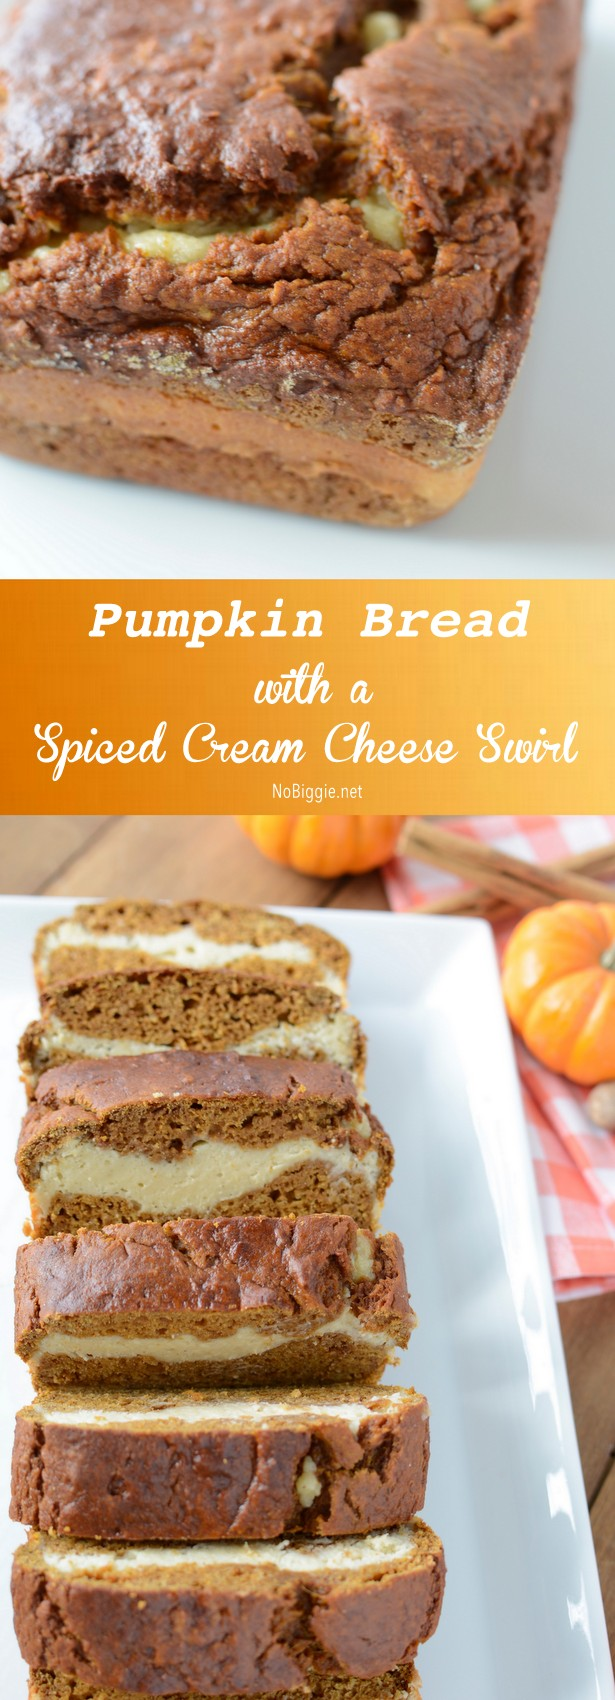 pumpkin bread with a spiced cream cheese swirl - a great twist to the classic pumpkin bread recipe we all know and love. #pumpkinbread #creamcheeseswirl #homemade #baking #falltreats #breads